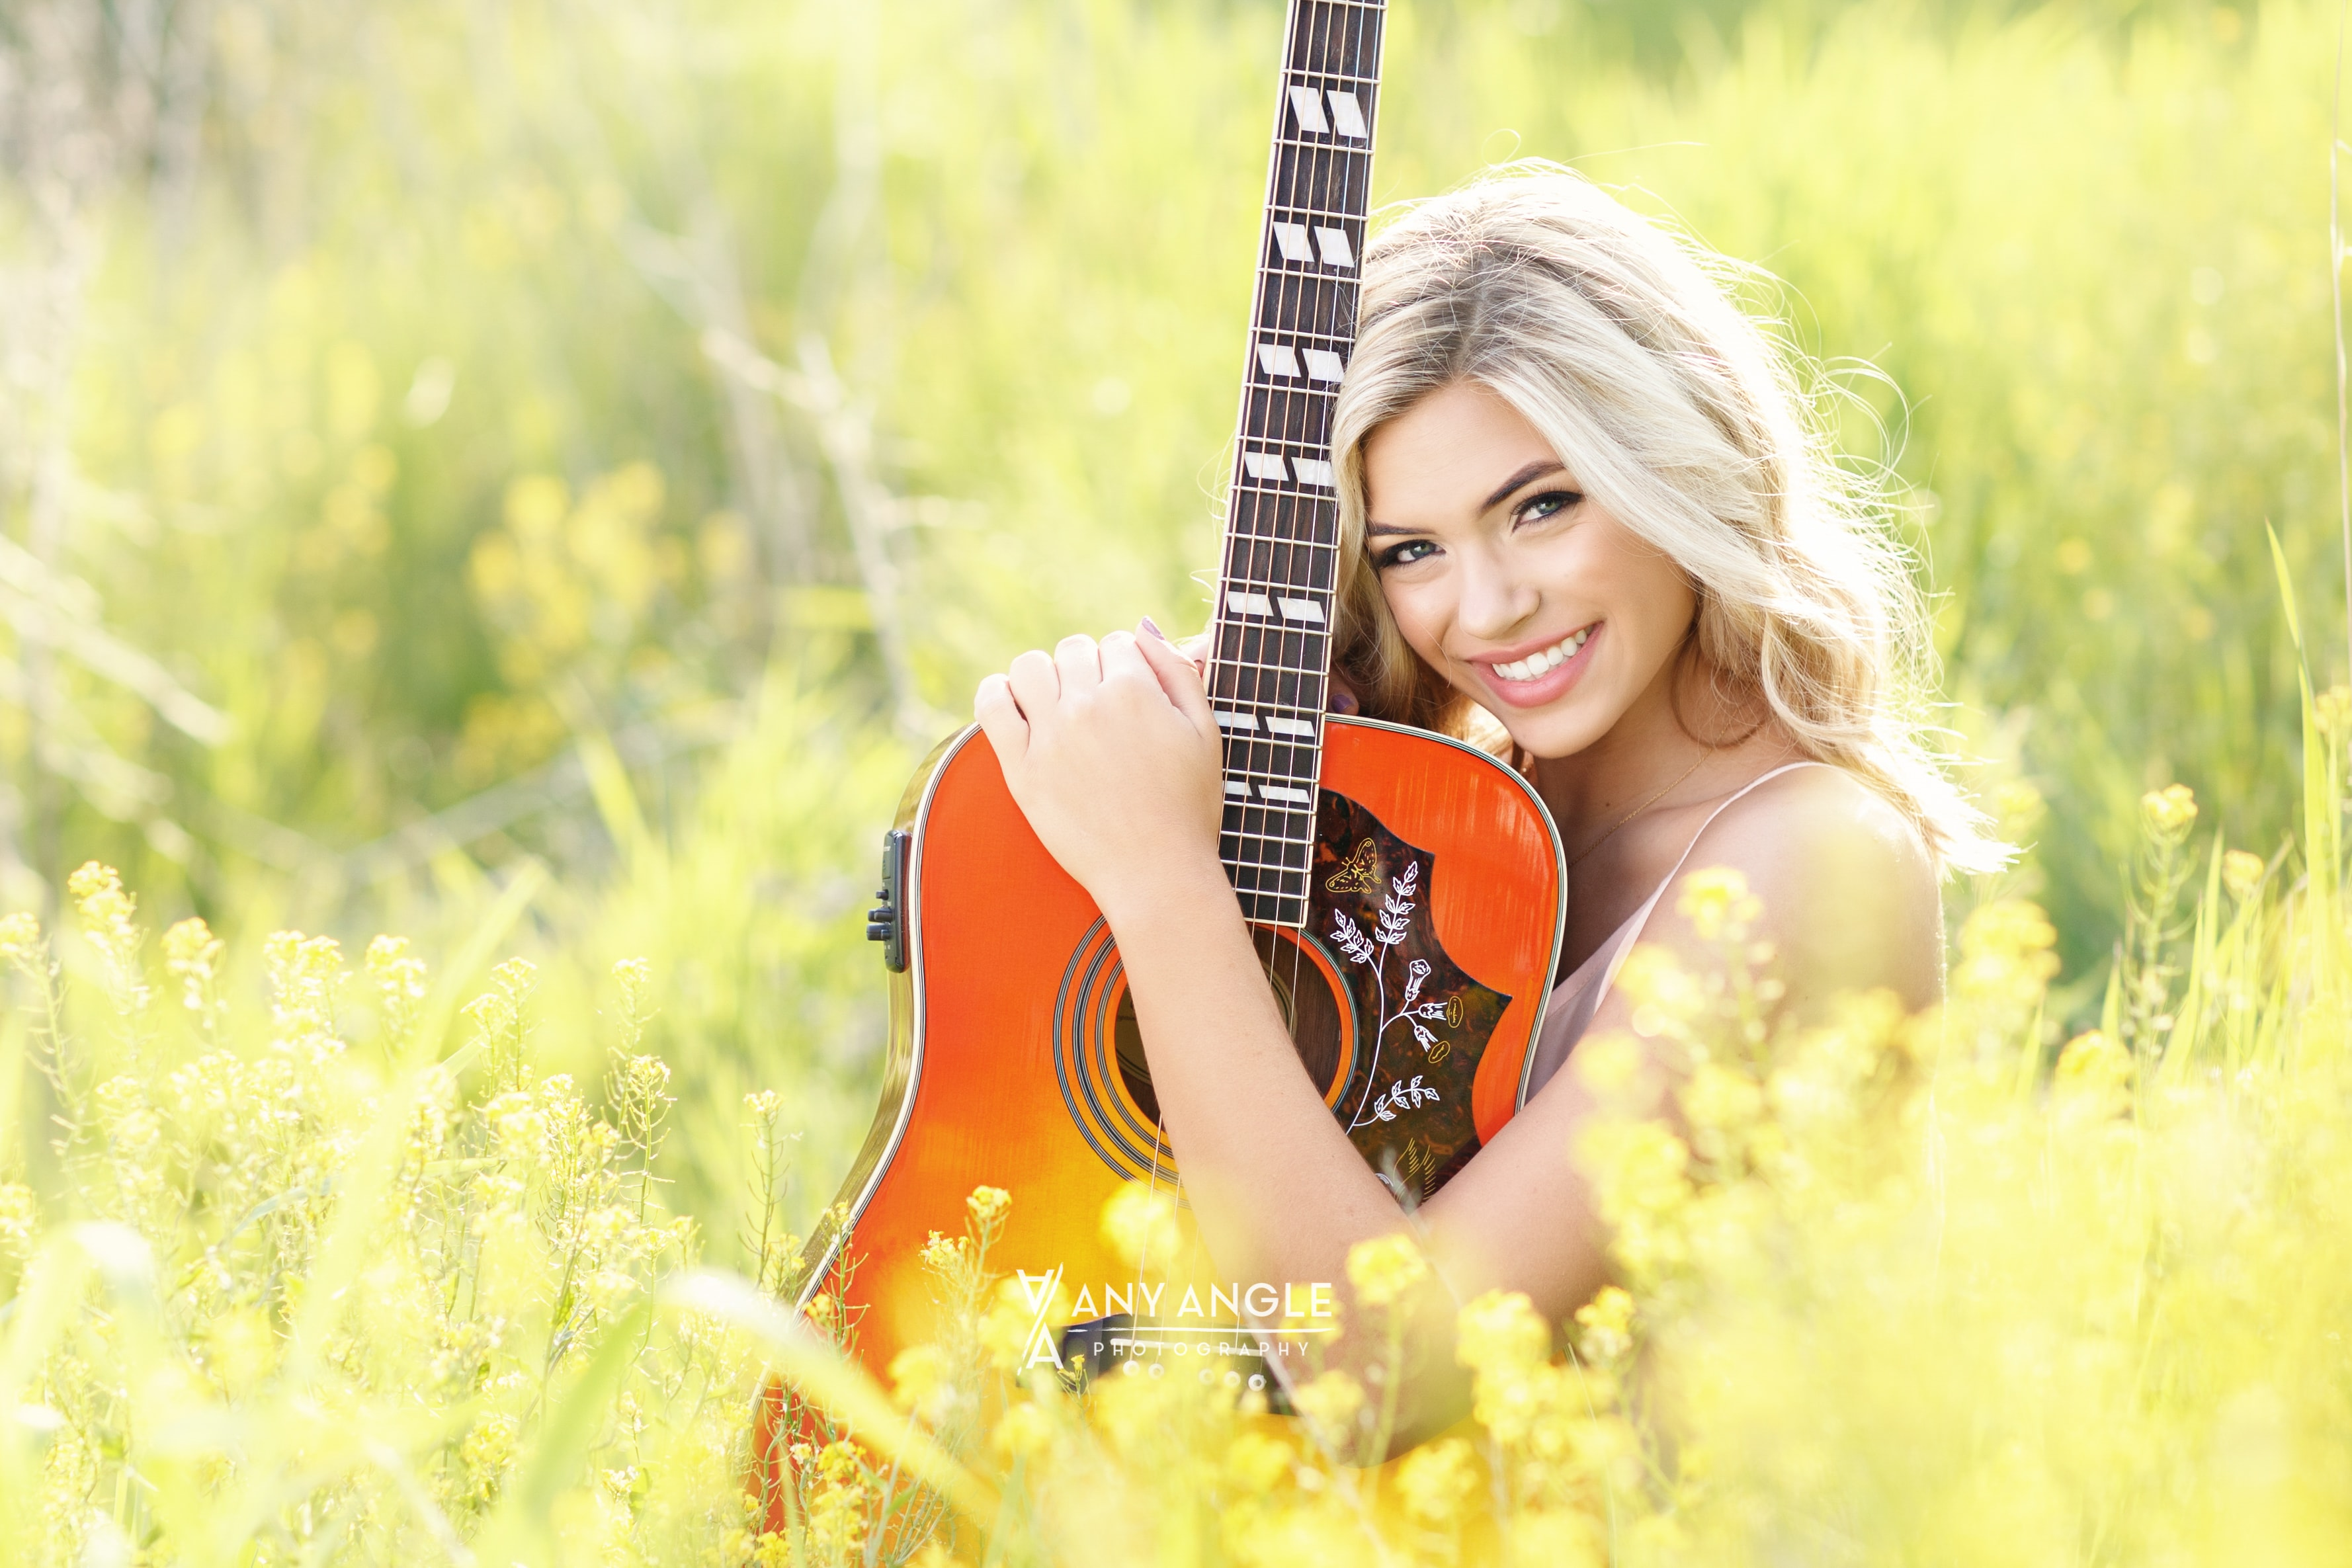 Spring senior pictures of girl in a field with guitar